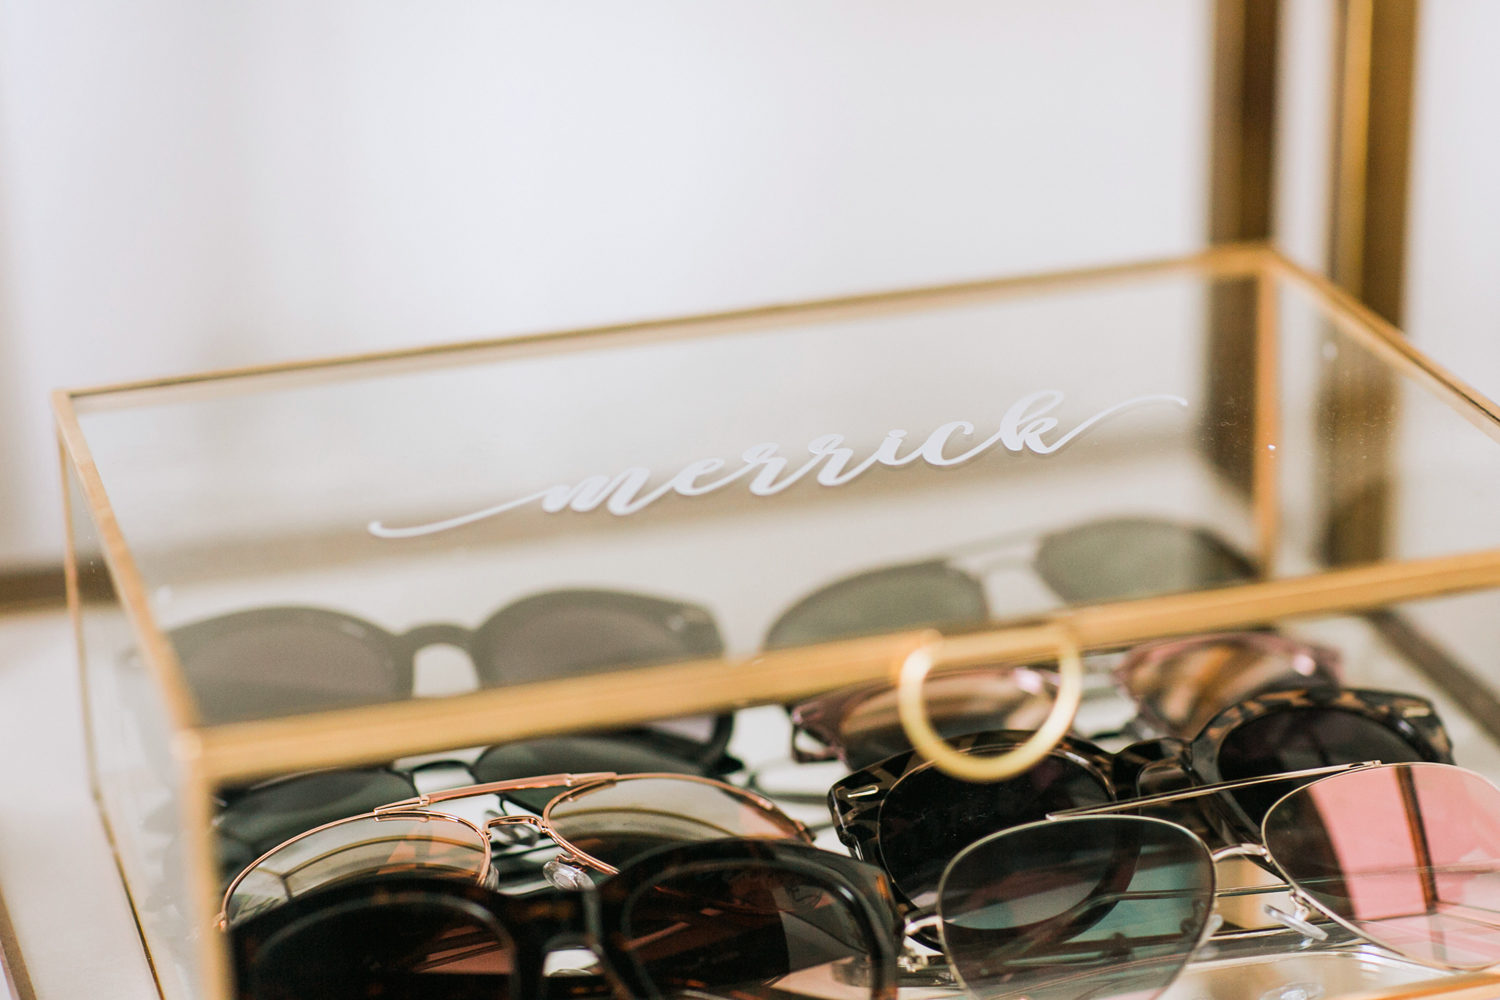 Merrick's Art Sunglasses